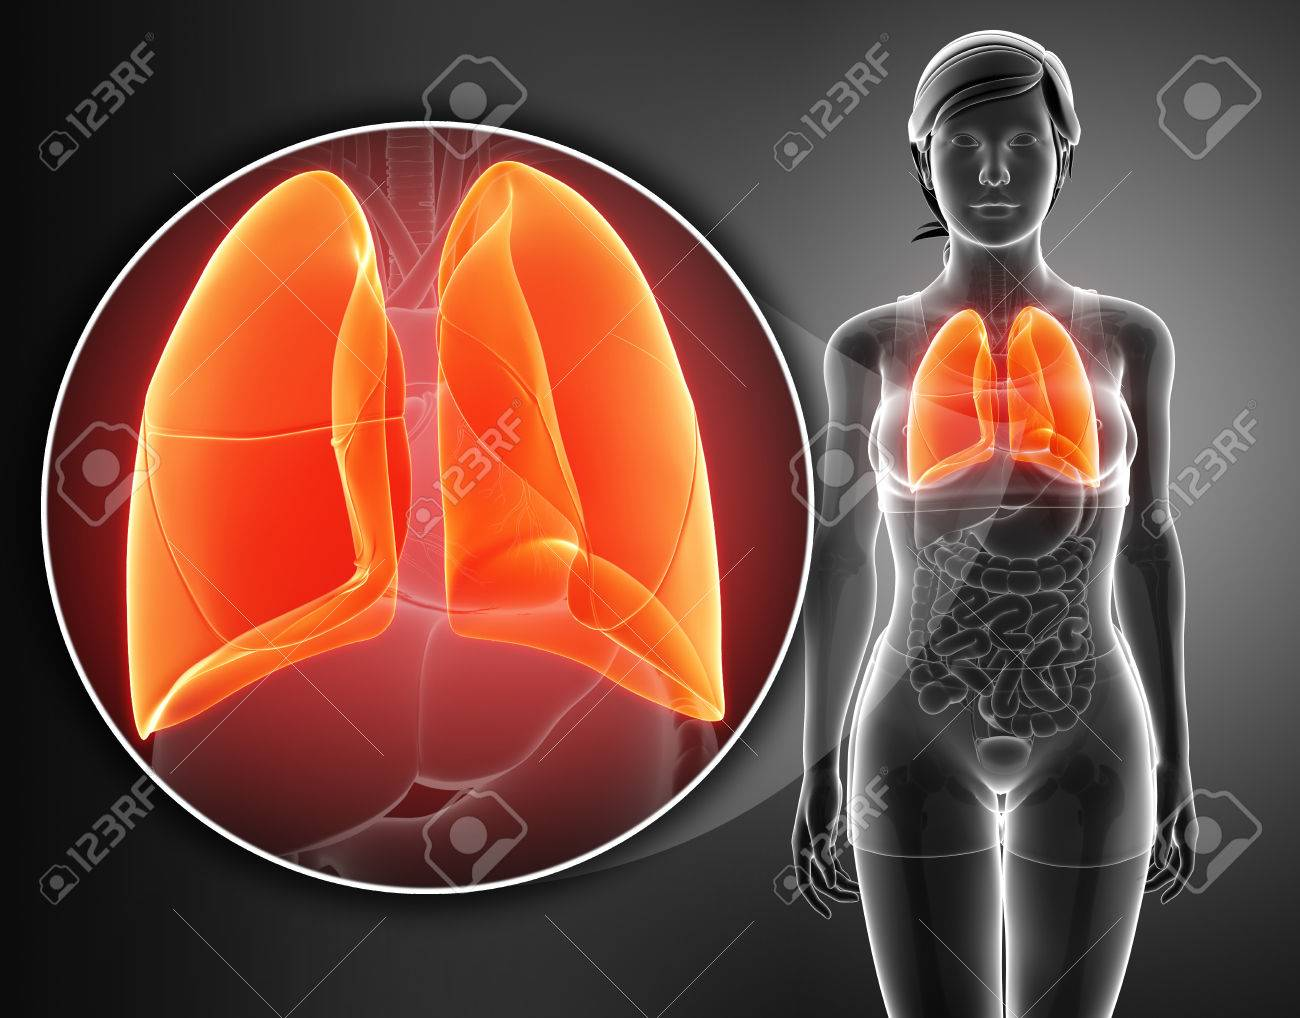 Anatomy Of Human Respiratory System With Lungs Stock Photo, Picture ...